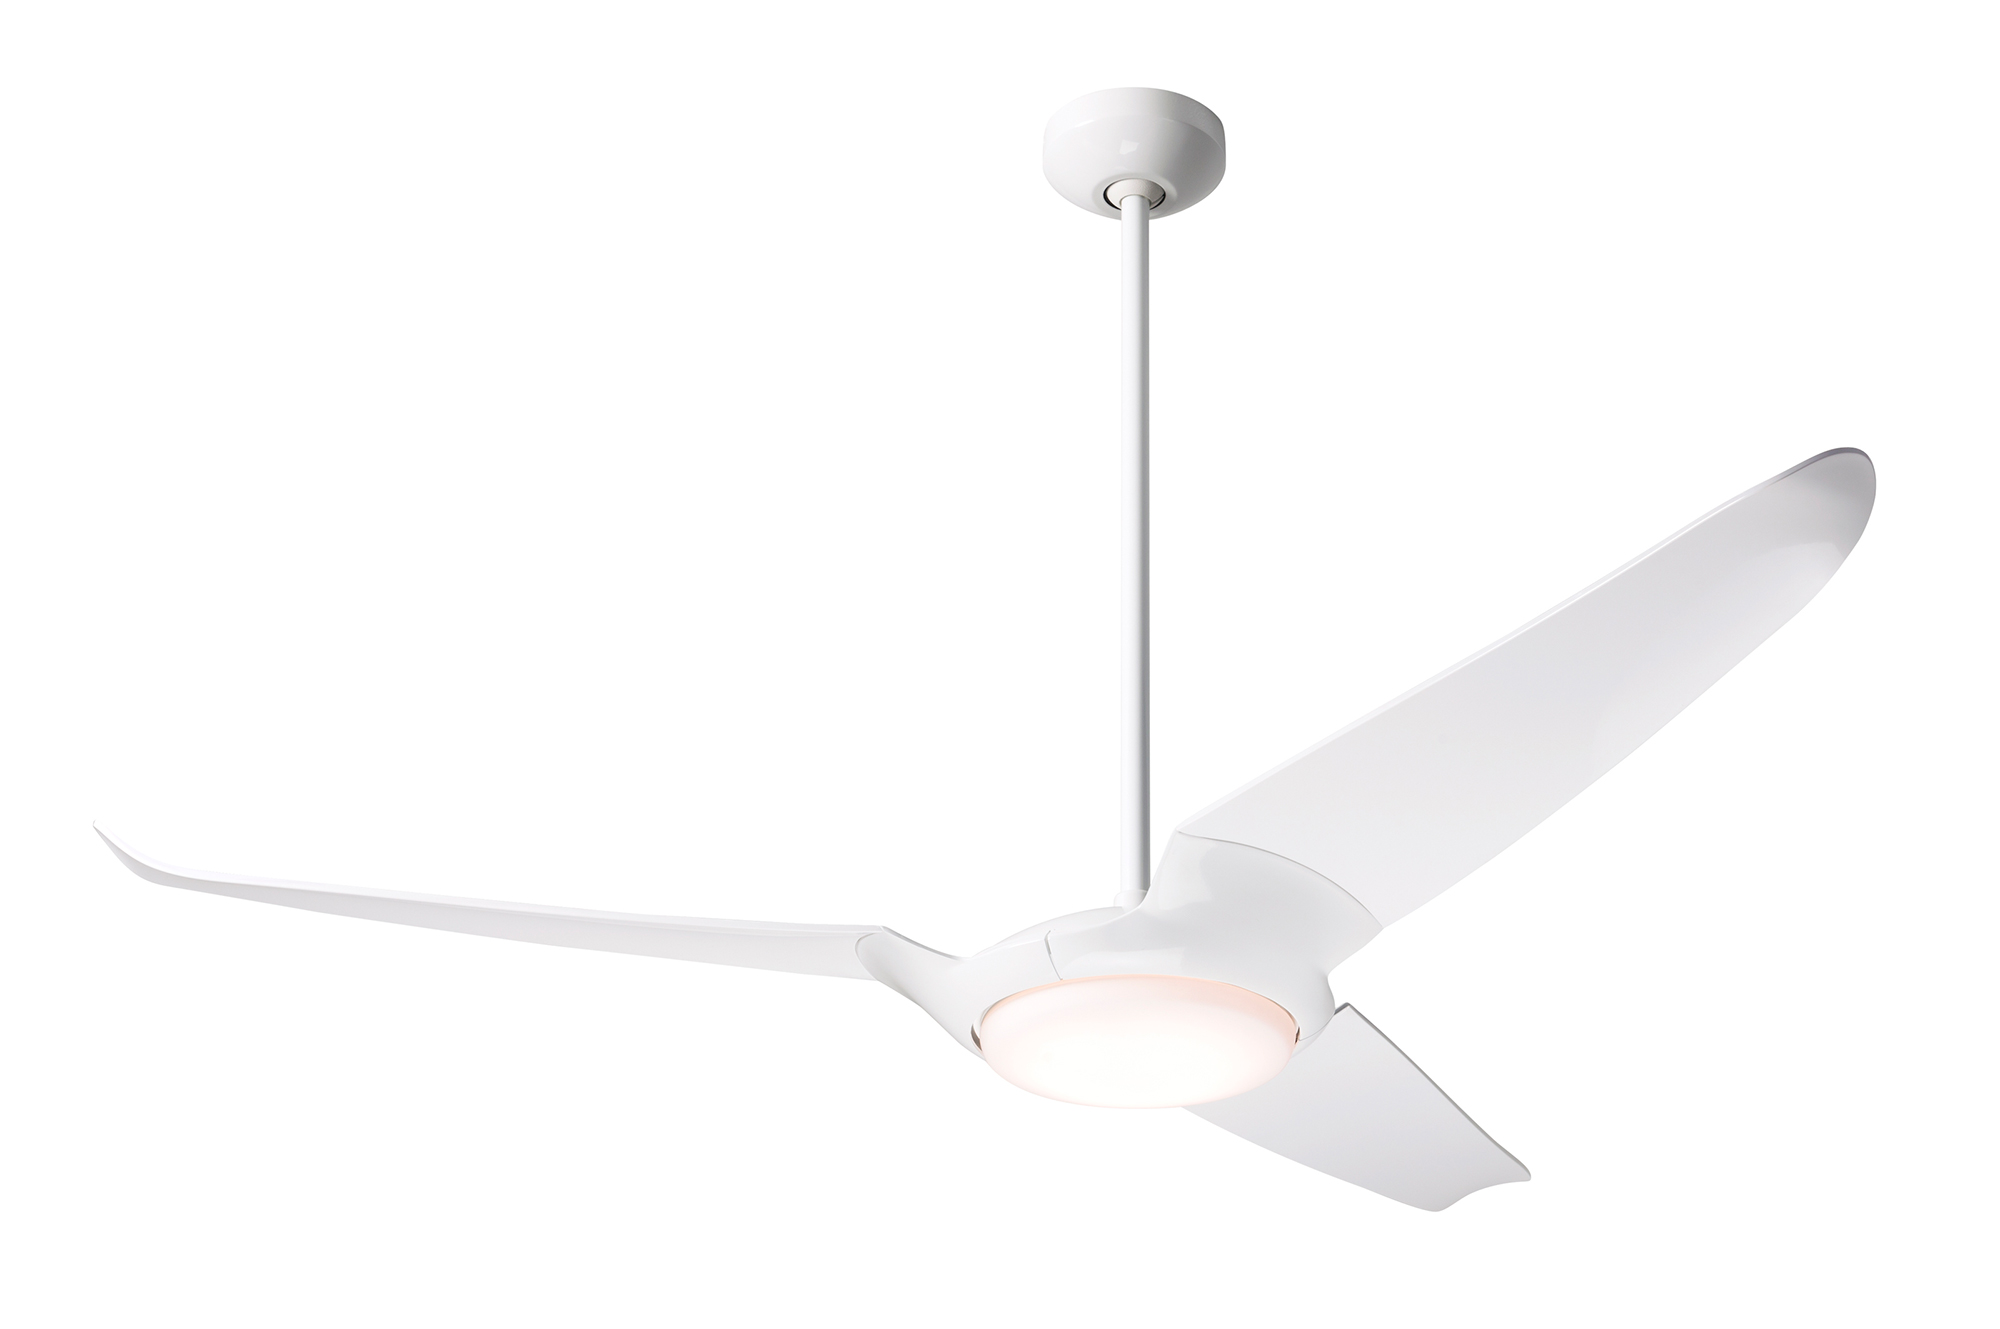 50aa47cbd1d IC Air3 Ceiling Fan with Light by Modern Fan Co.